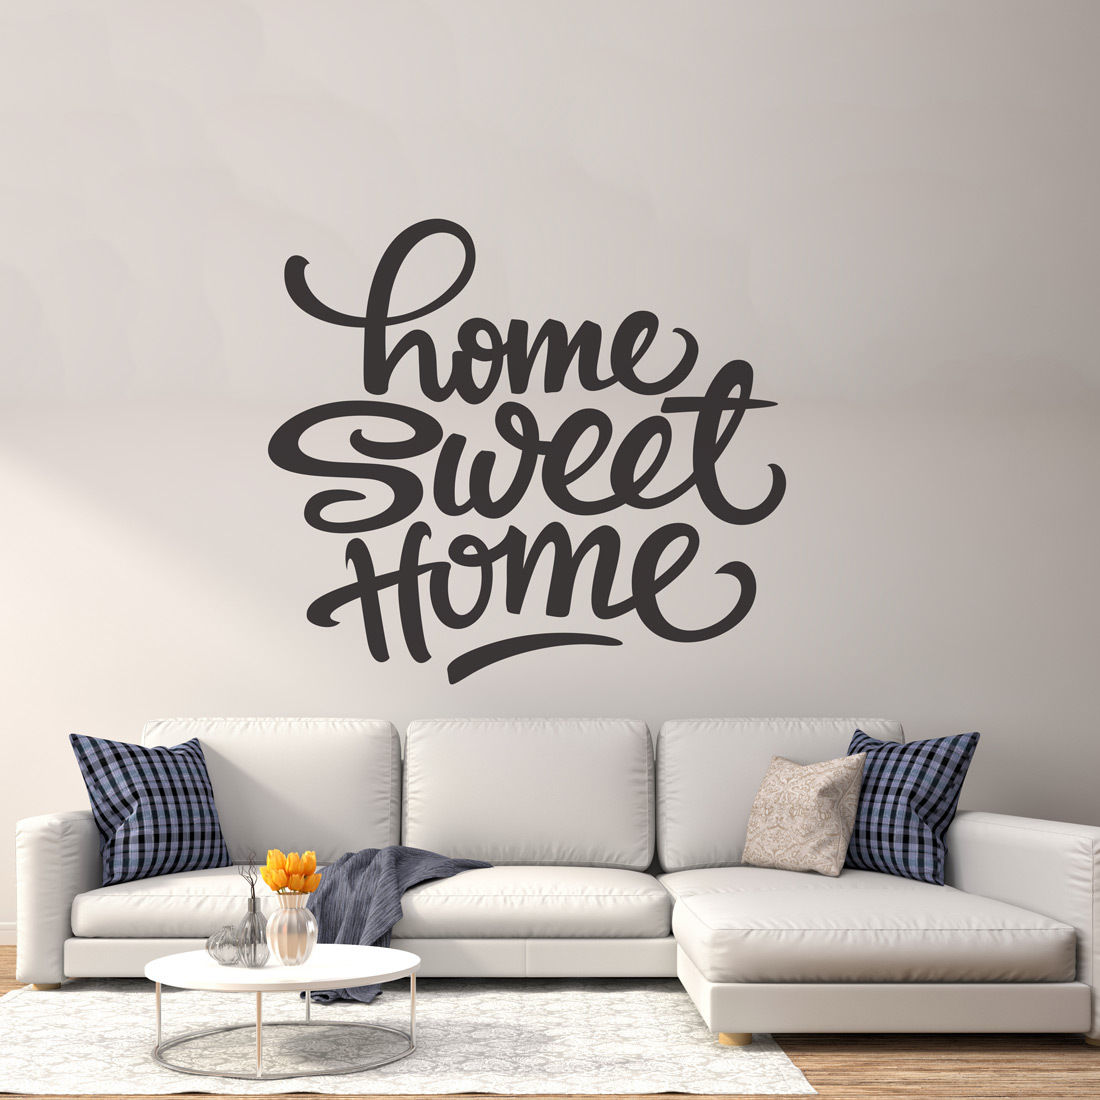 Wall Art Decals For Living Room: Sweet Home Wall Decor Vinyl Sticker Decal Livingroom